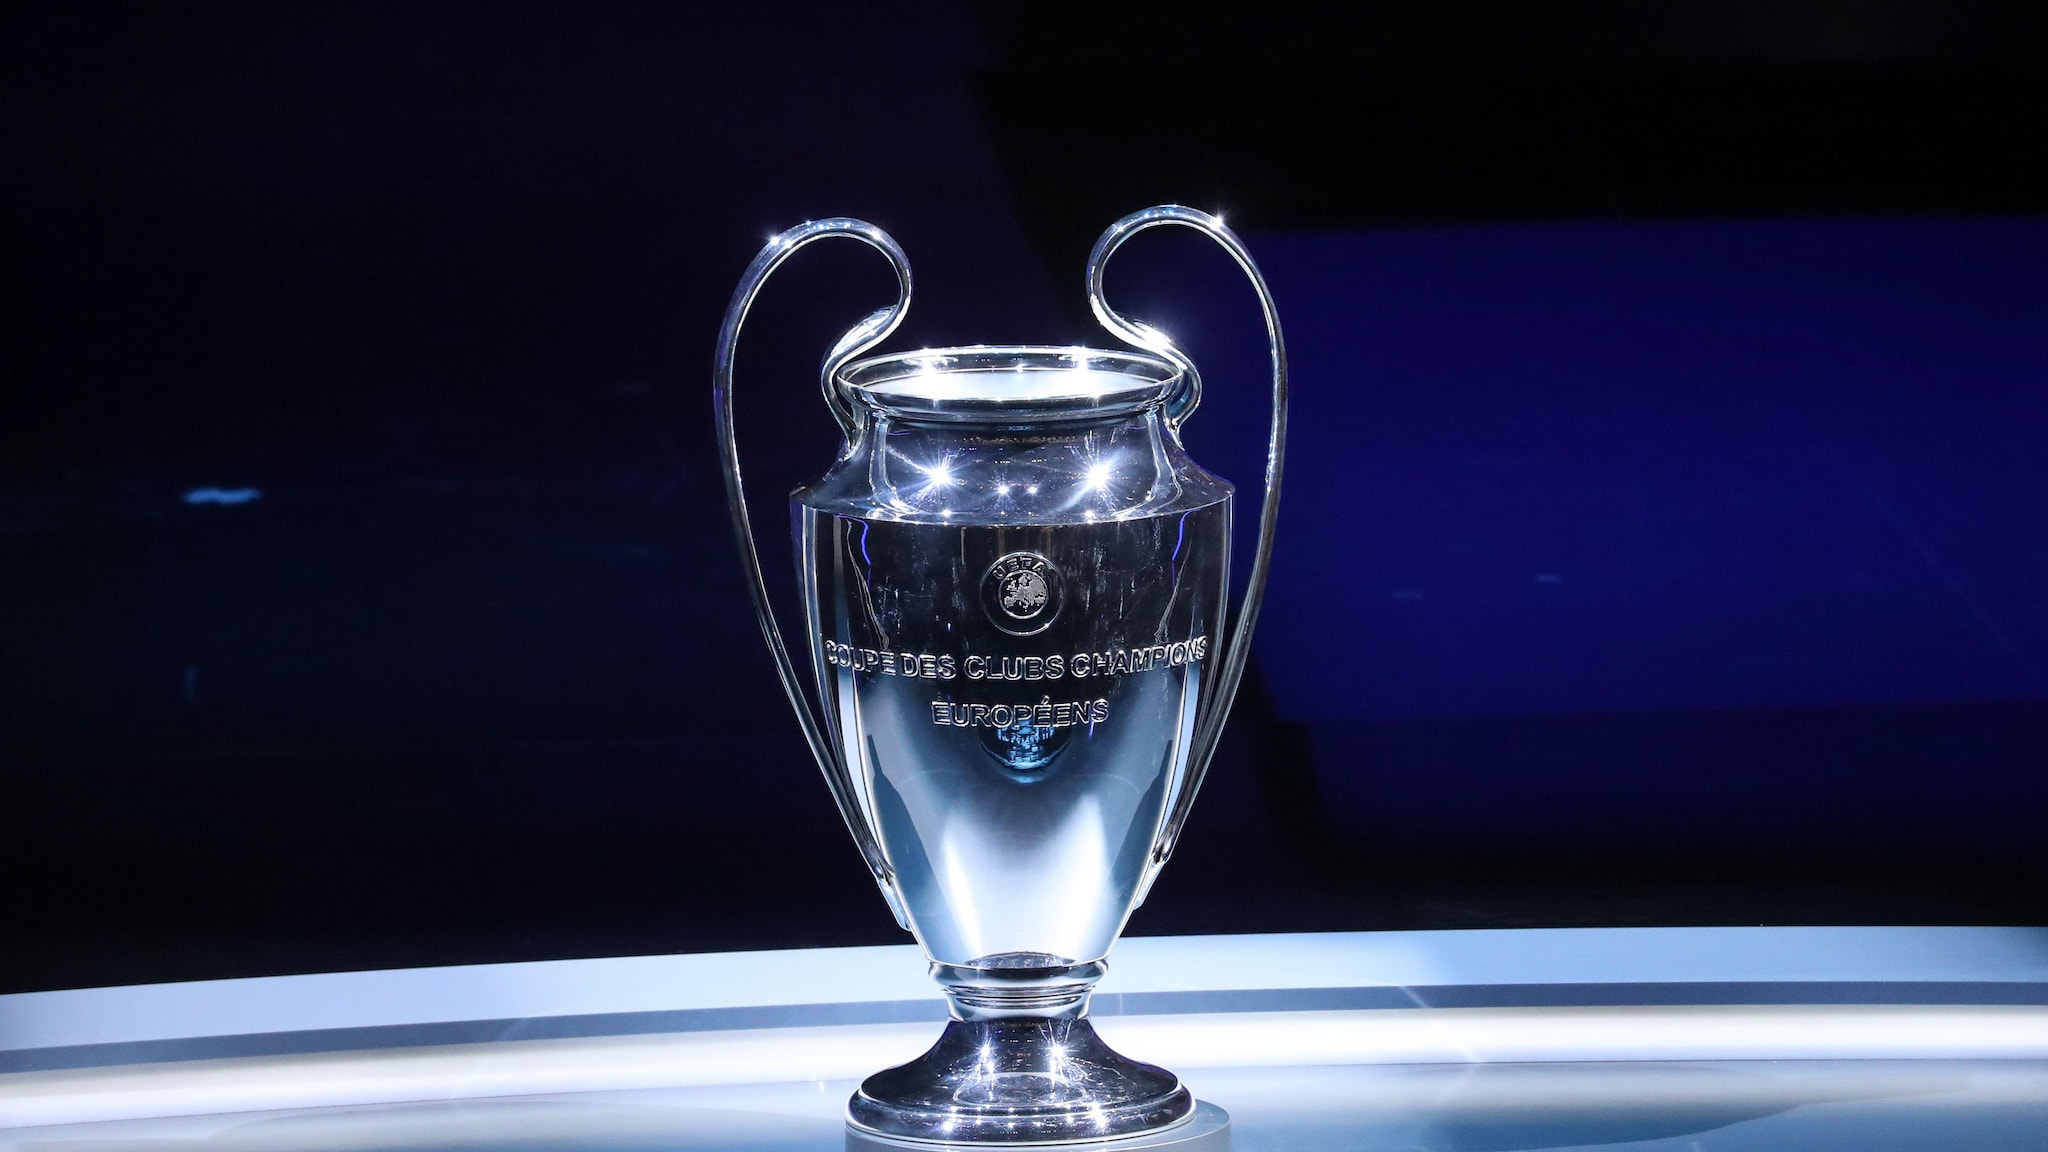 the uefa champions league trophy uefa champions league uefa com the uefa champions league trophy uefa